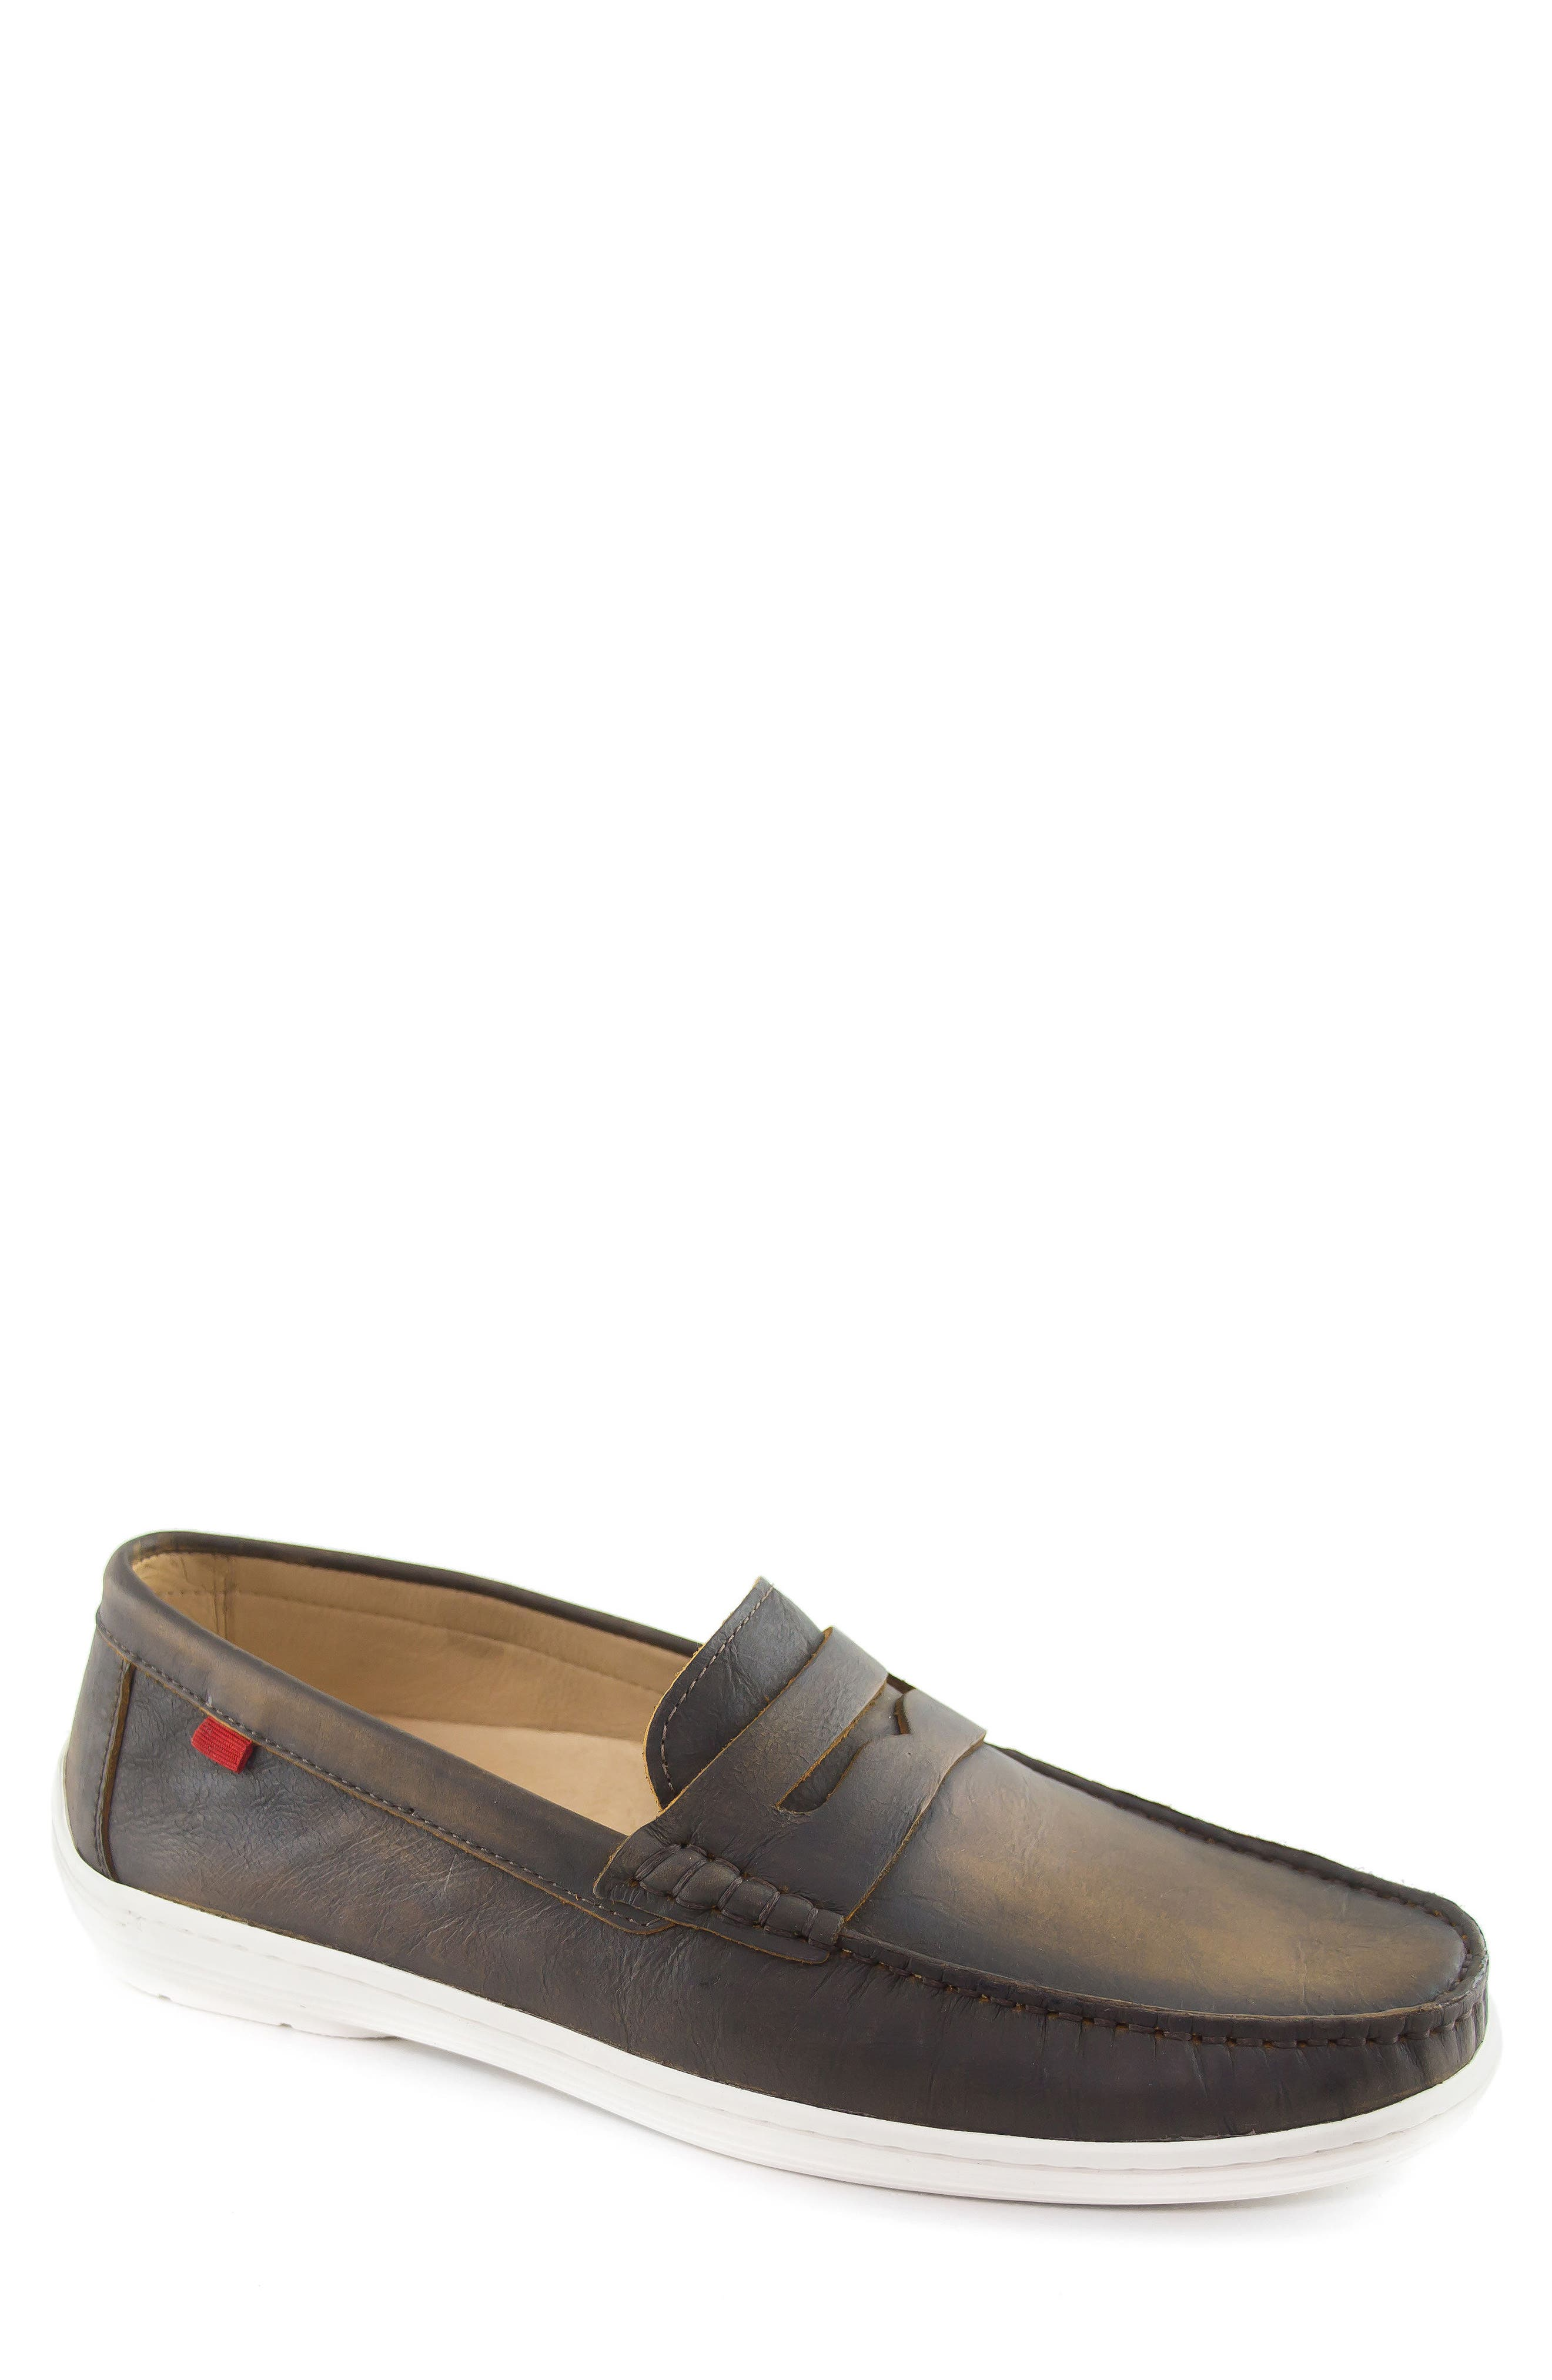 Atlantic Penny Loafer,                             Main thumbnail 1, color,                             Cafe Washed